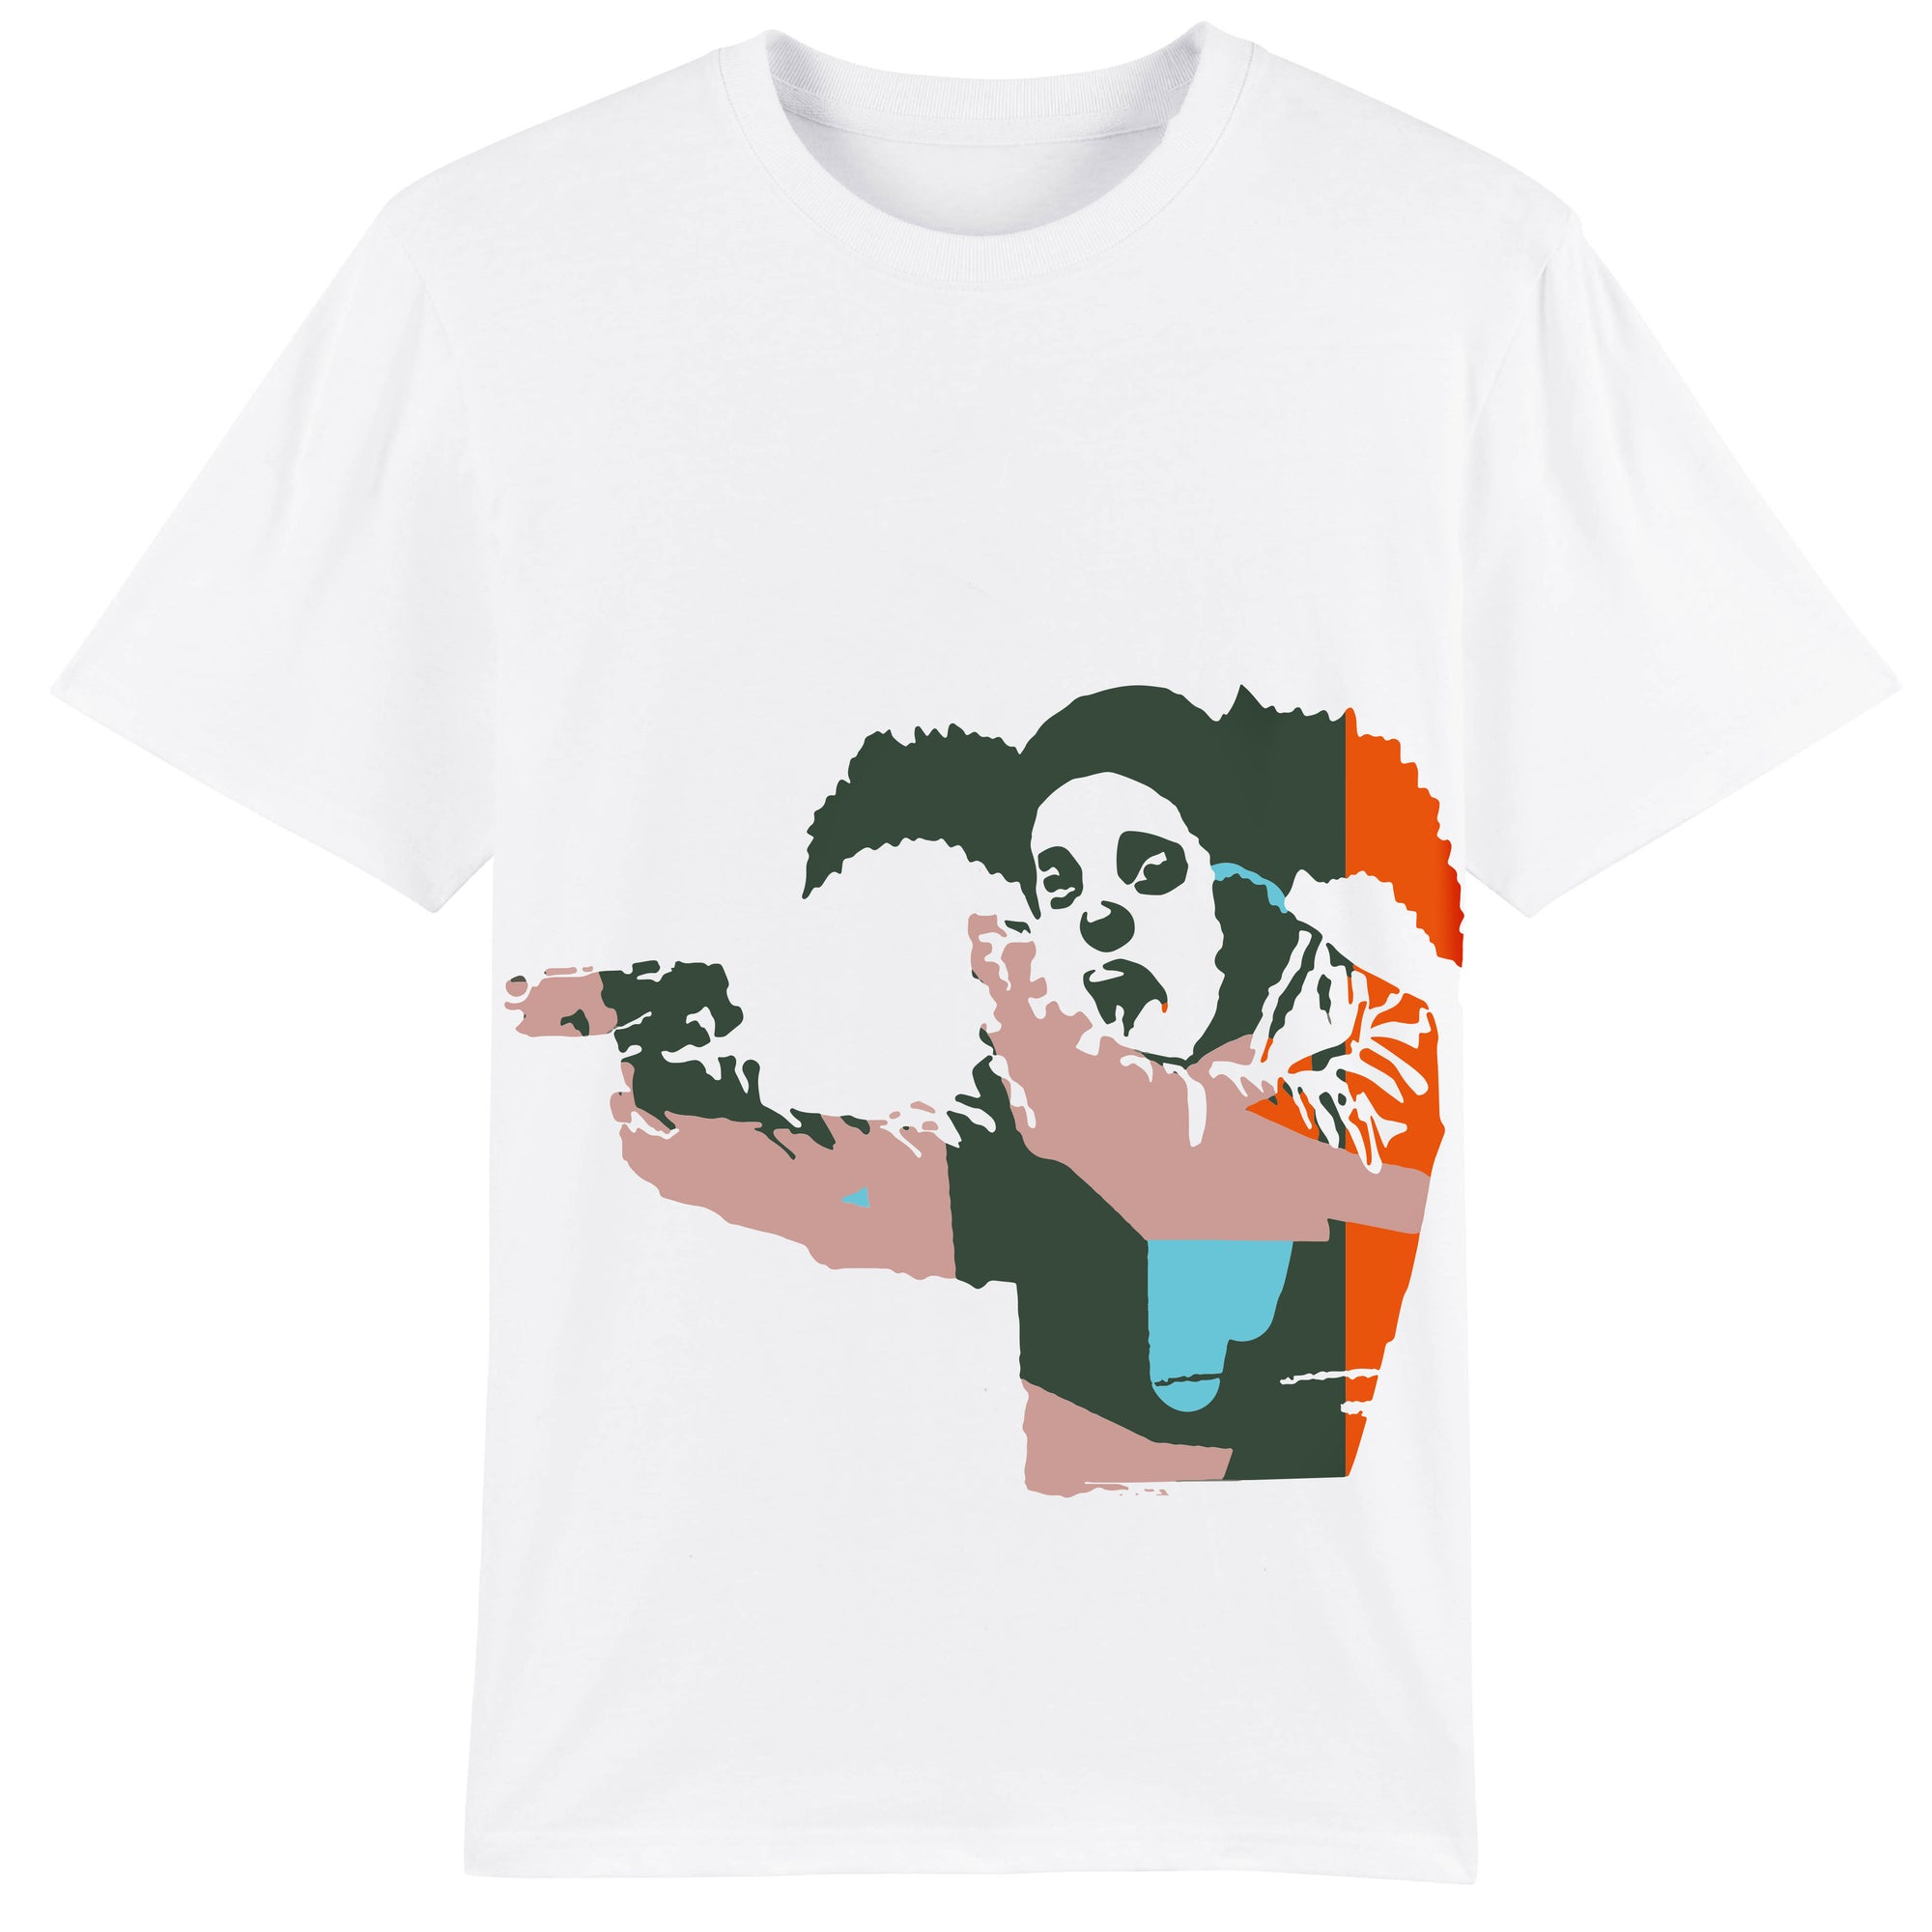 Clown Skateboards Owners T-shirt - White/Multi Colour